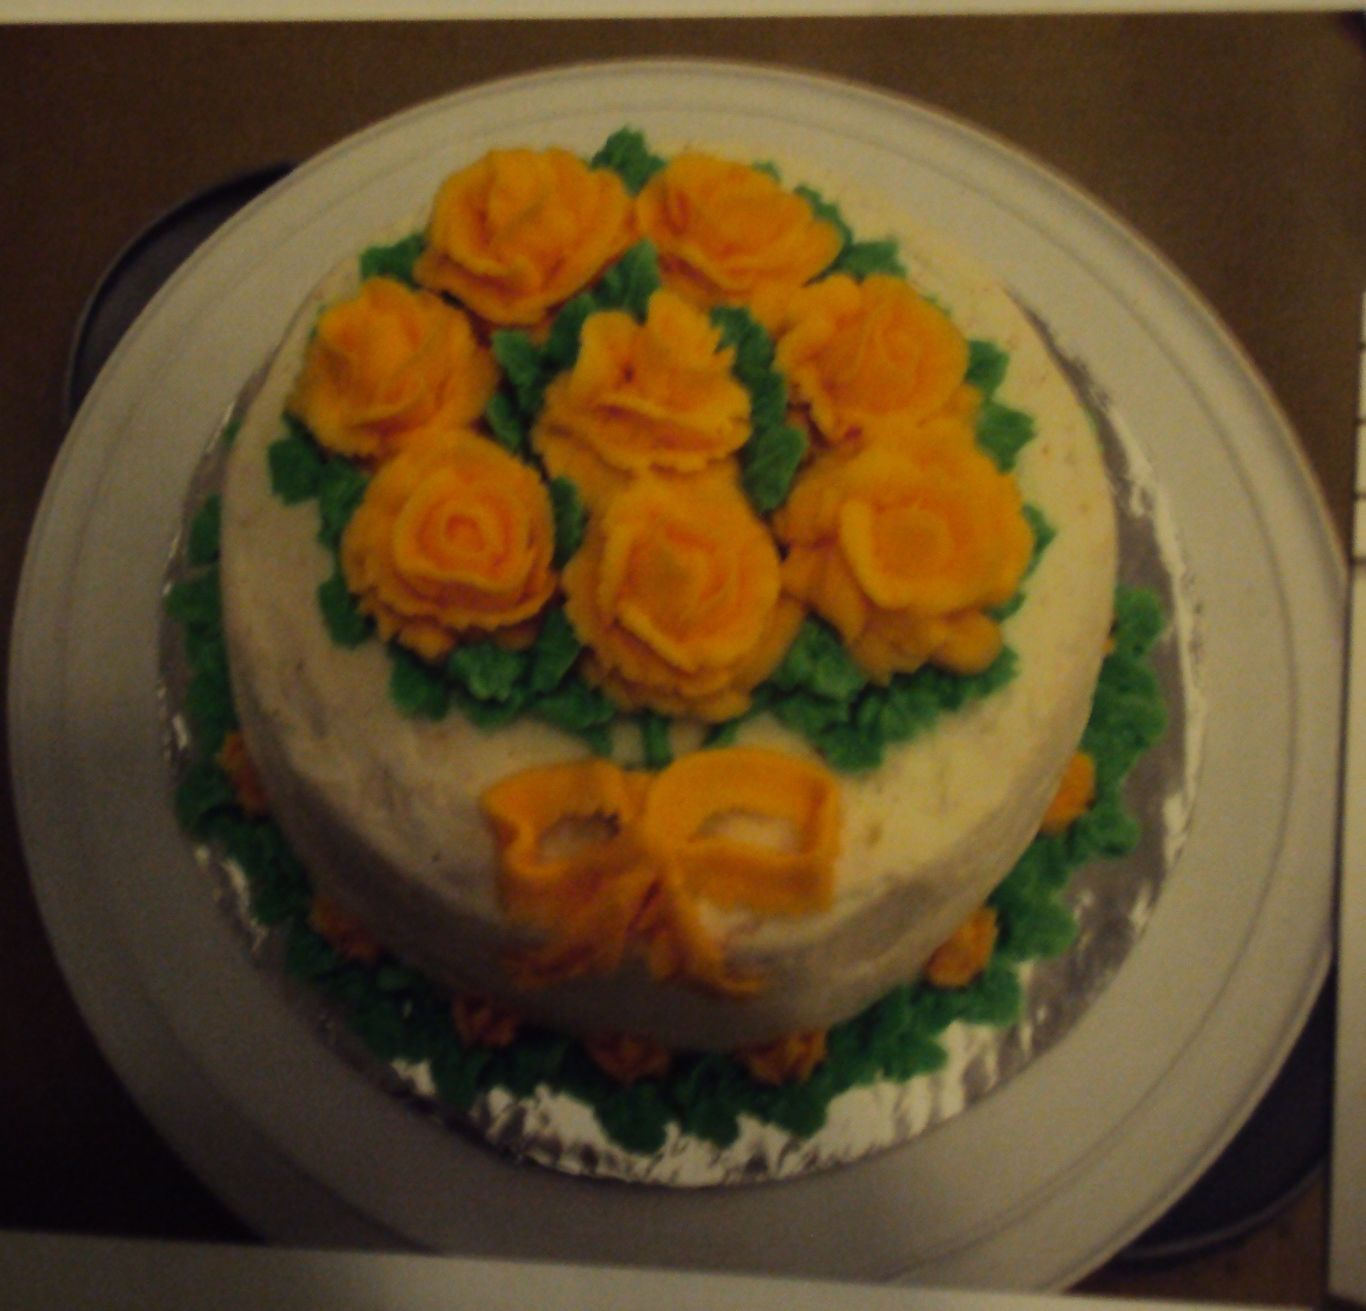 Cake Decorating Classes In Michaels : Pin by Kim Gray on Cakes I ve Made Pinterest